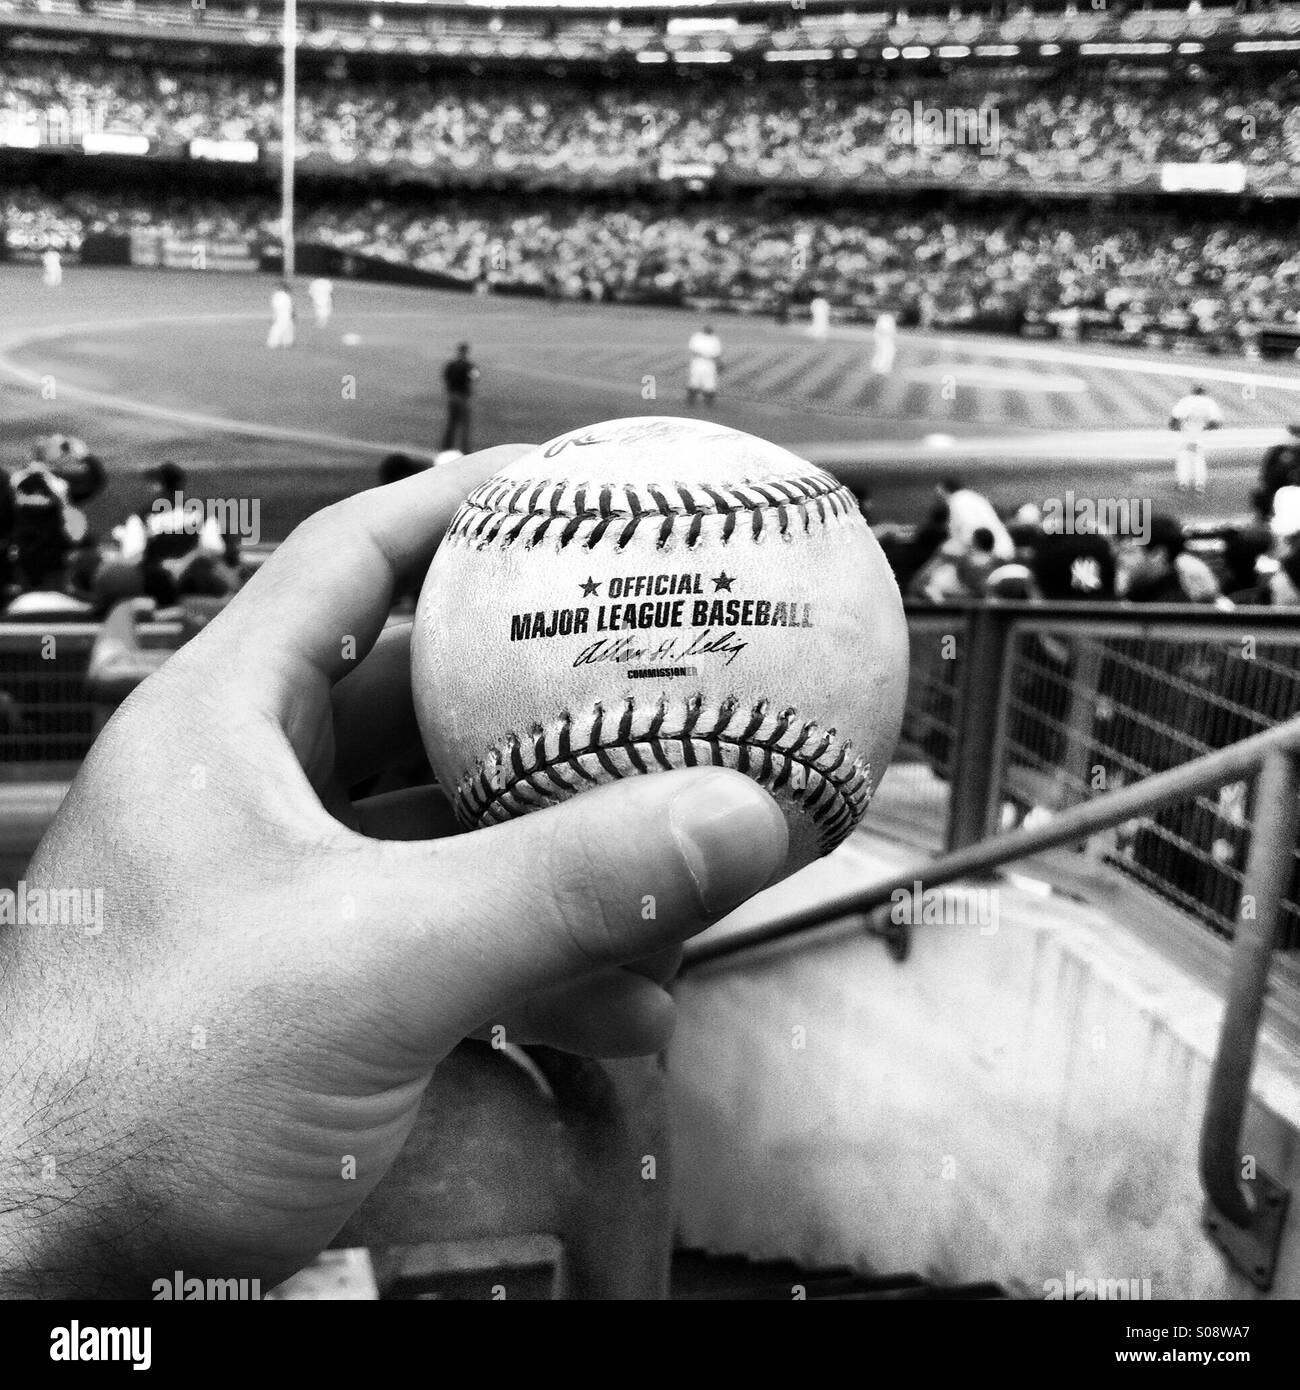 Foul ball at Yankee stadium in the Bronx, NYC - Stock Image